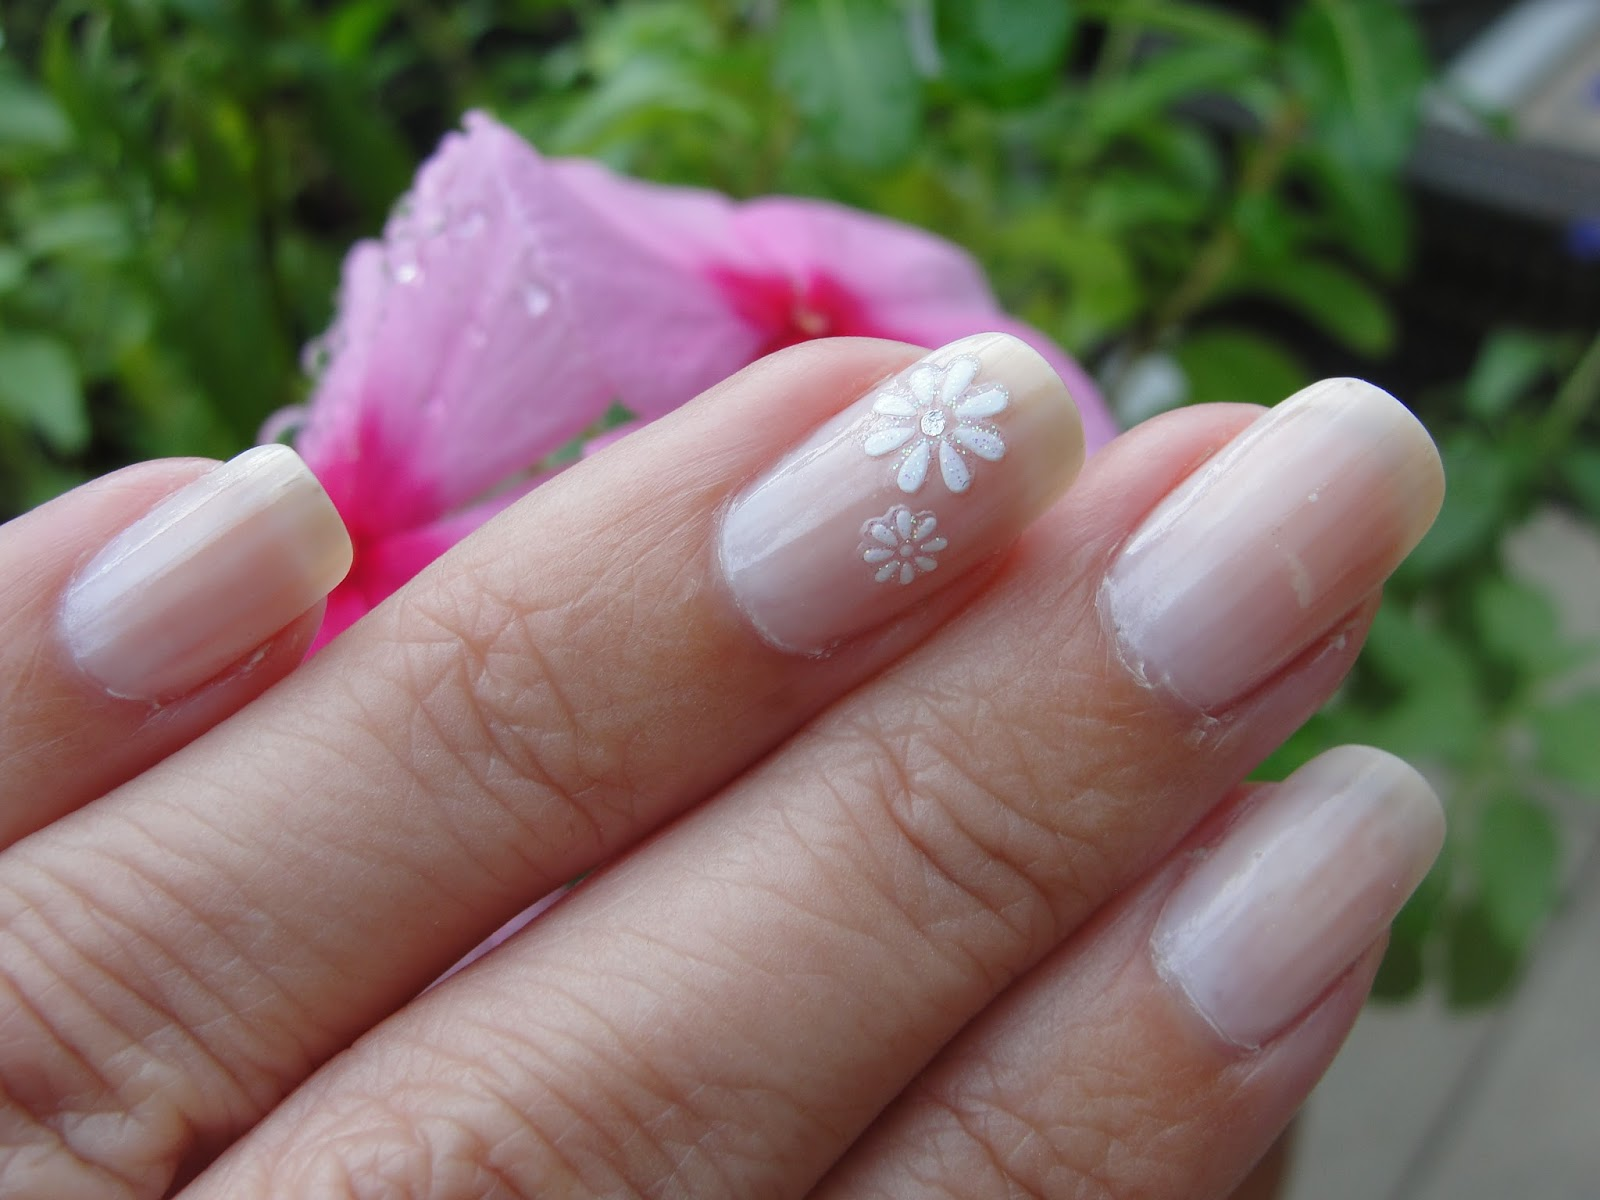 7 tips on how to save money on your wedding wedding nail inspirations s for you all simple enough to do yourself at the convenience of your home just add some flower stickers or some glitter solutioingenieria Gallery